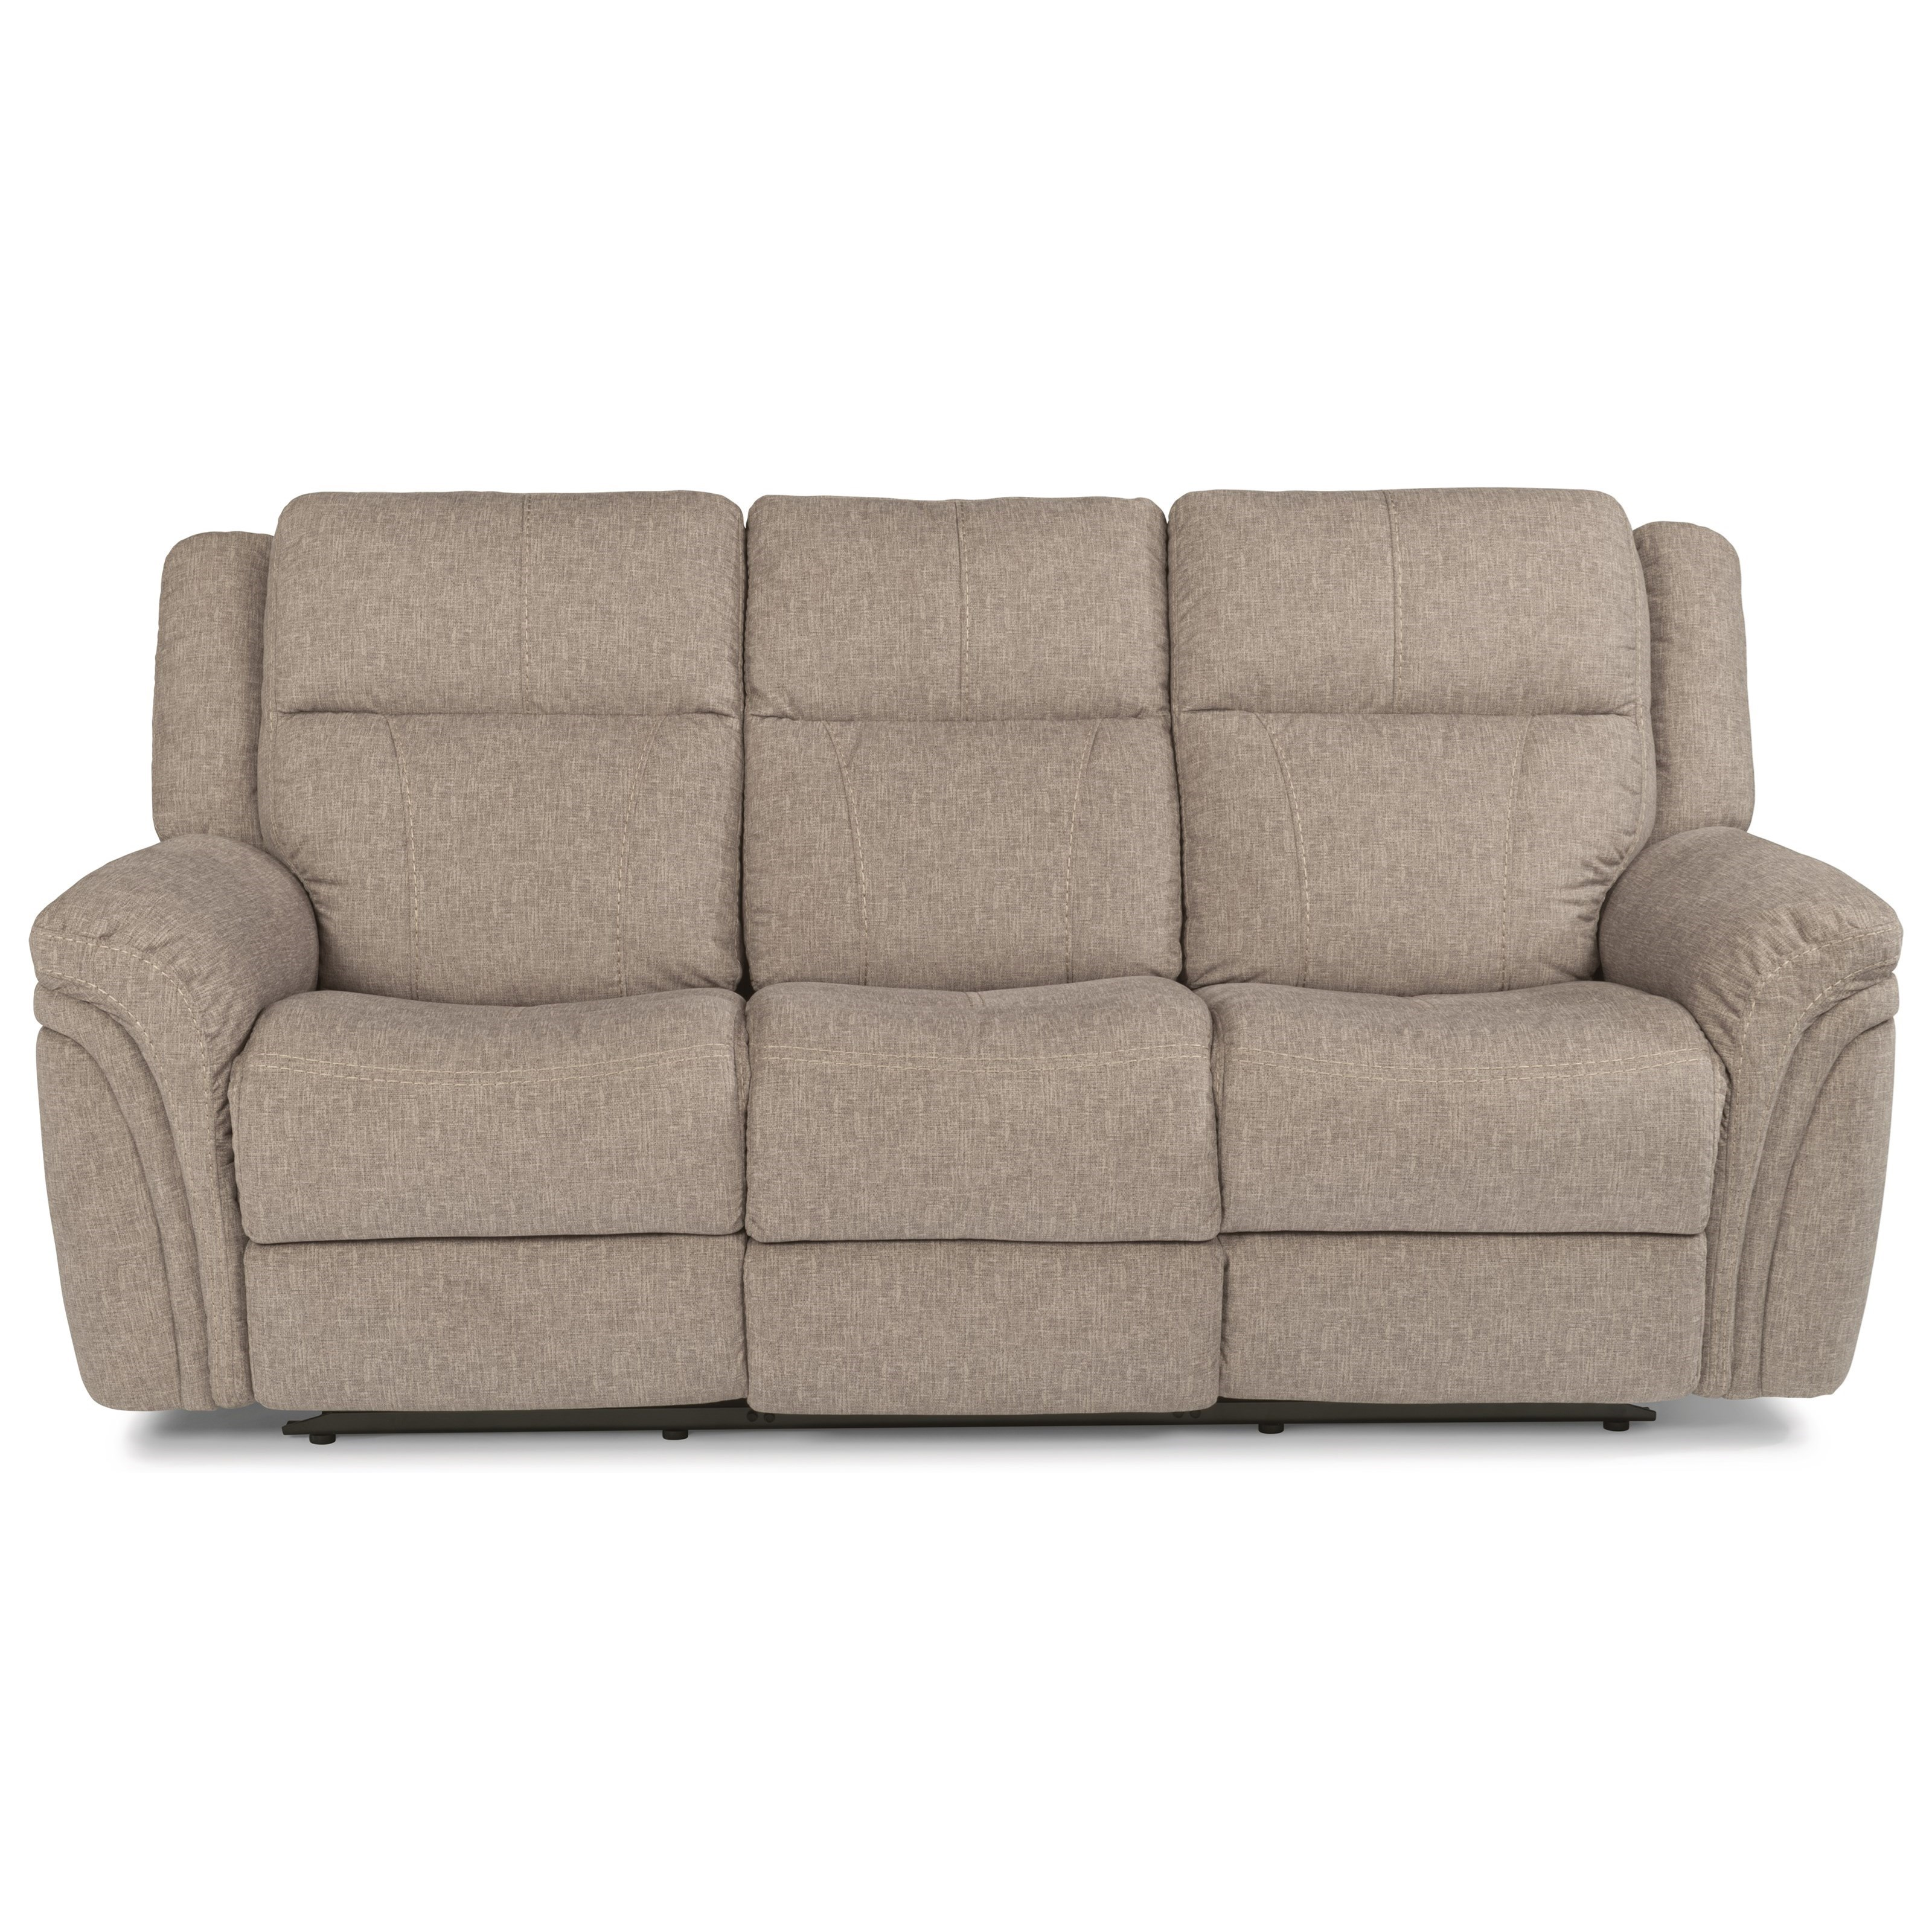 Flexsteel Latitudes Silas 1170 62ph Casual Power Reclining Sofa